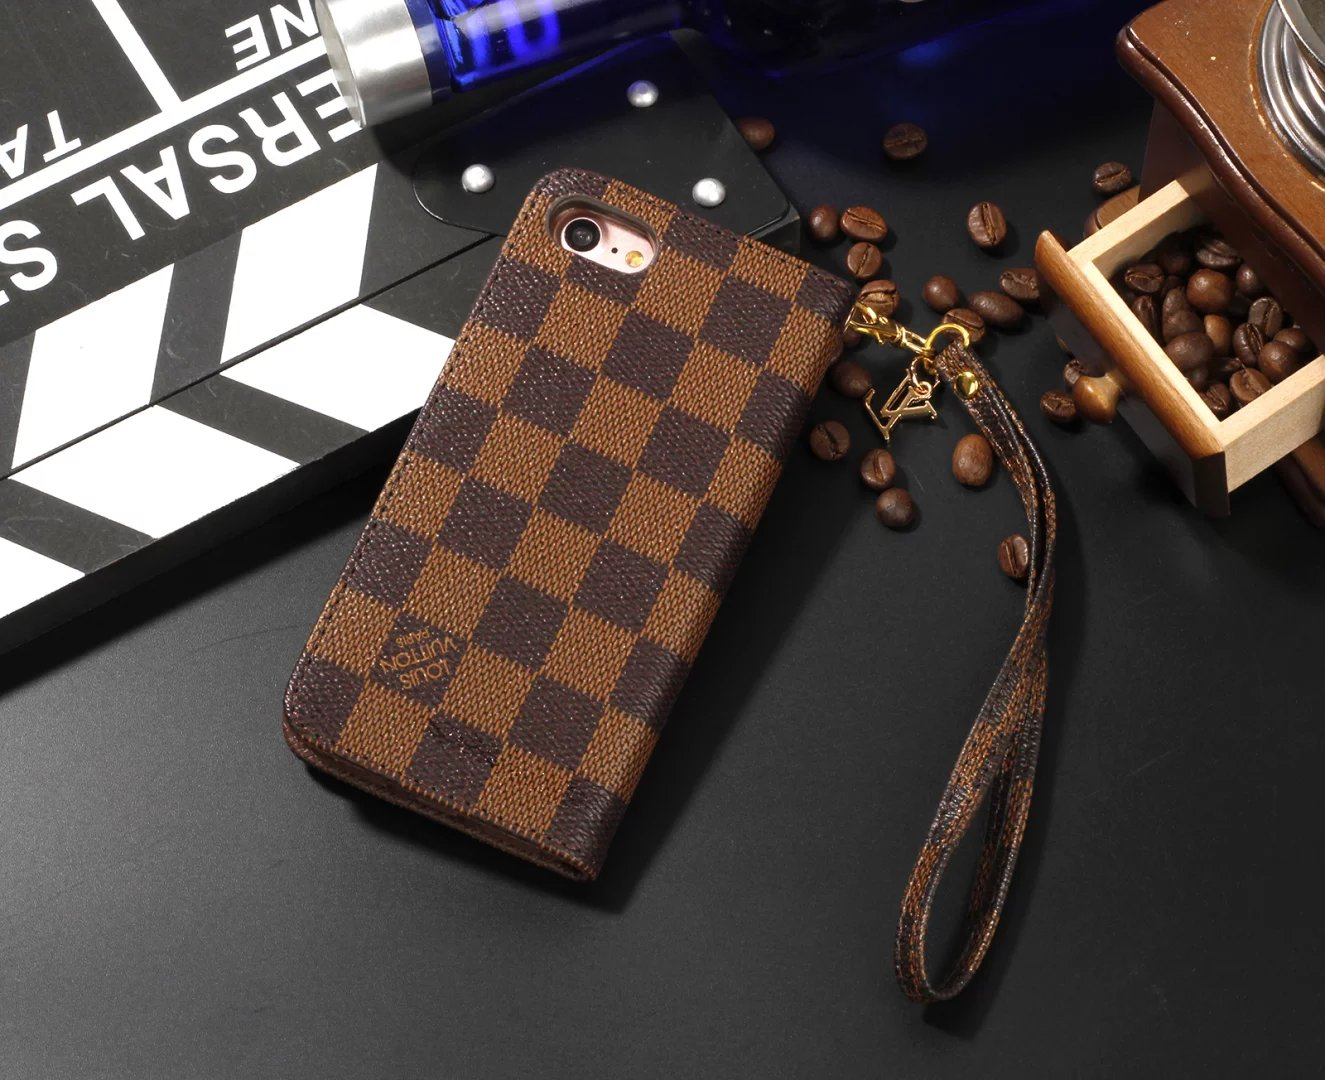 cases for iphone 8 Plus designer iphone 8 Plus covers Louis Vuitton iphone 8 Plus case iphone 8 Plus with case iphone 8 Plus battery capacity mah design a iPhone 8 Plus case iphone battery mah iphone 8 Plus case how much is a mophie juice pack